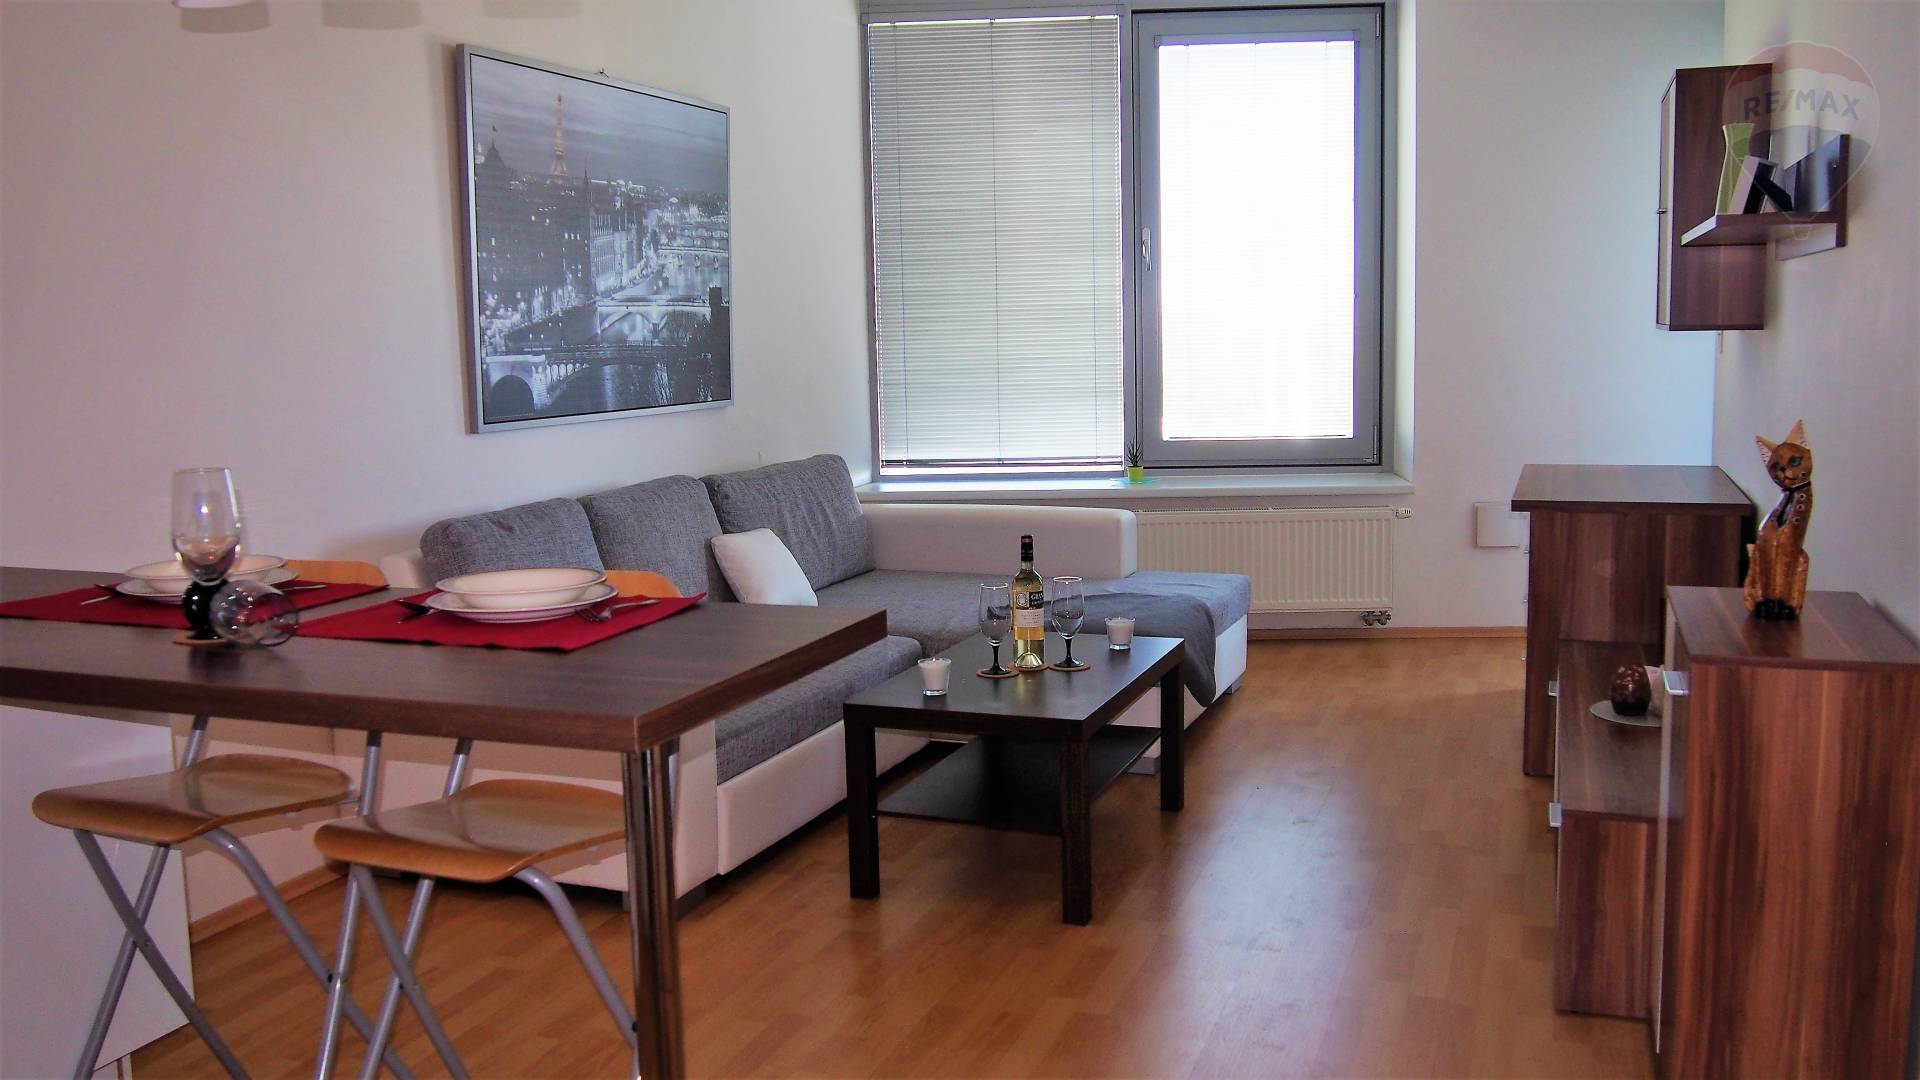 EXCLUSIVE OFFER FOR RENT - BAJKALSKÁ, 2-ROOMS APARTMENT, PROJECT III VEŽE - BALCONY, AIR CONDITION